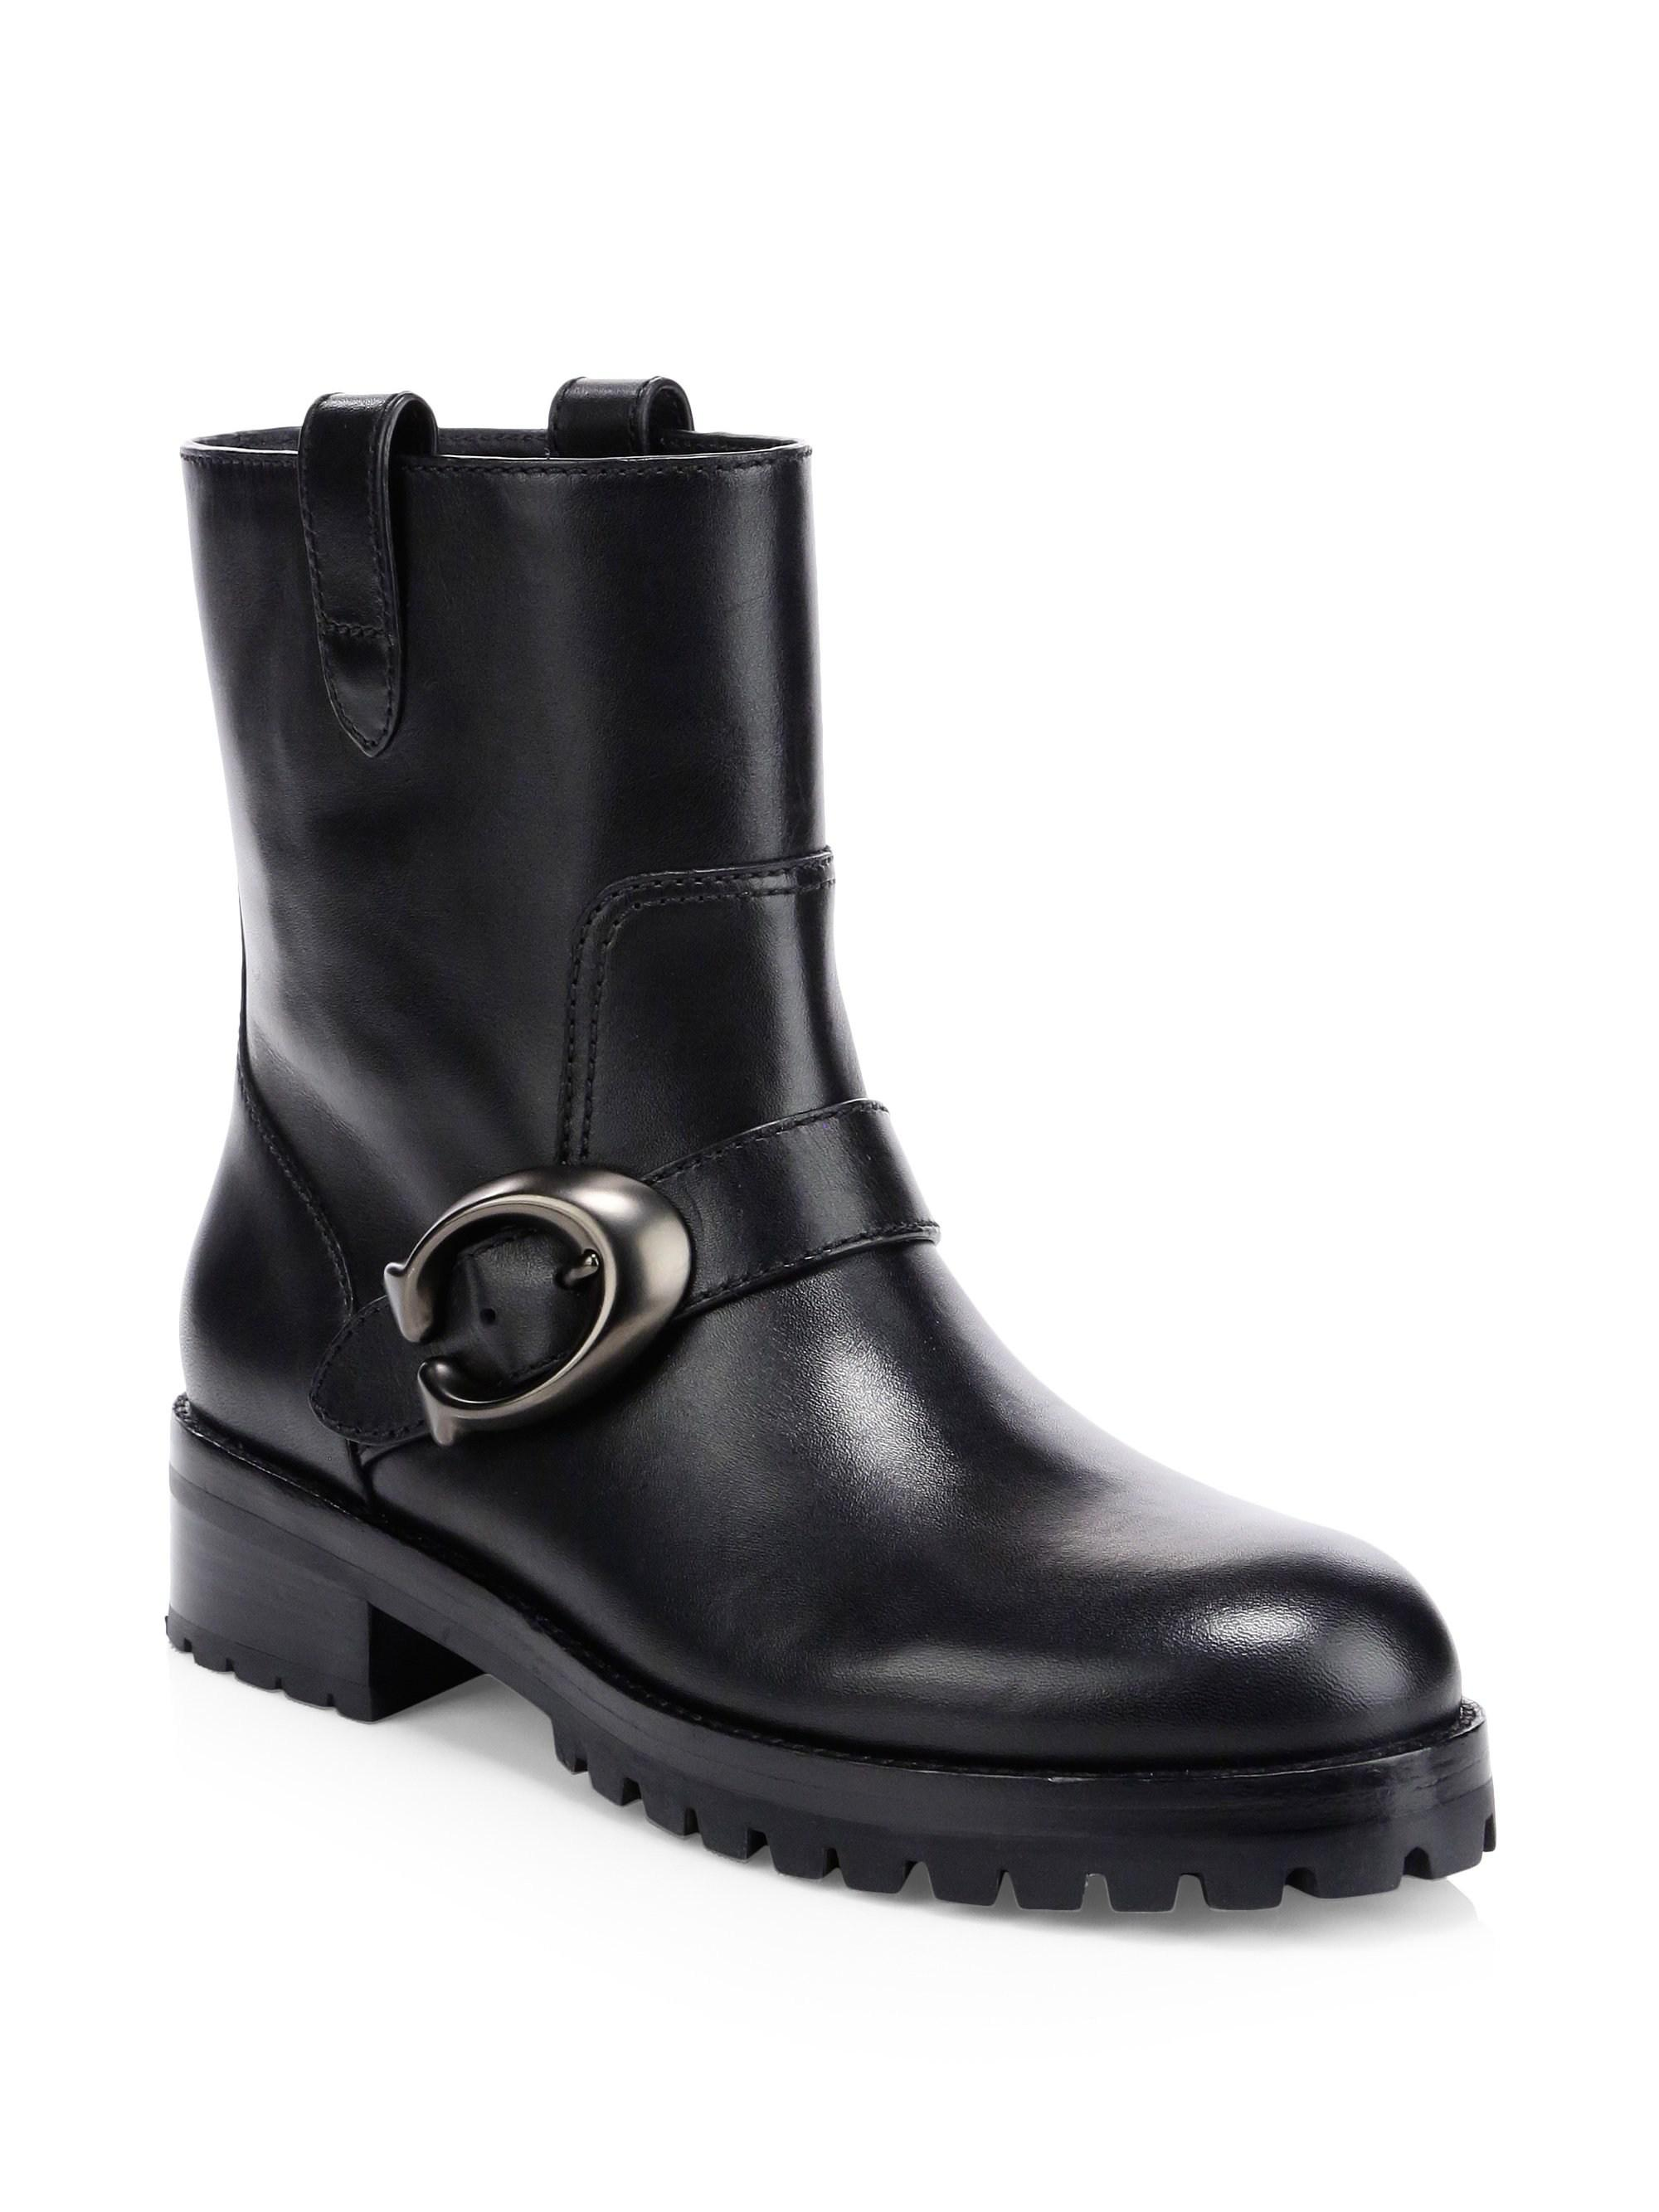 a046217c8c123 Coach Leighton Leather Moto Boots in Black - Lyst